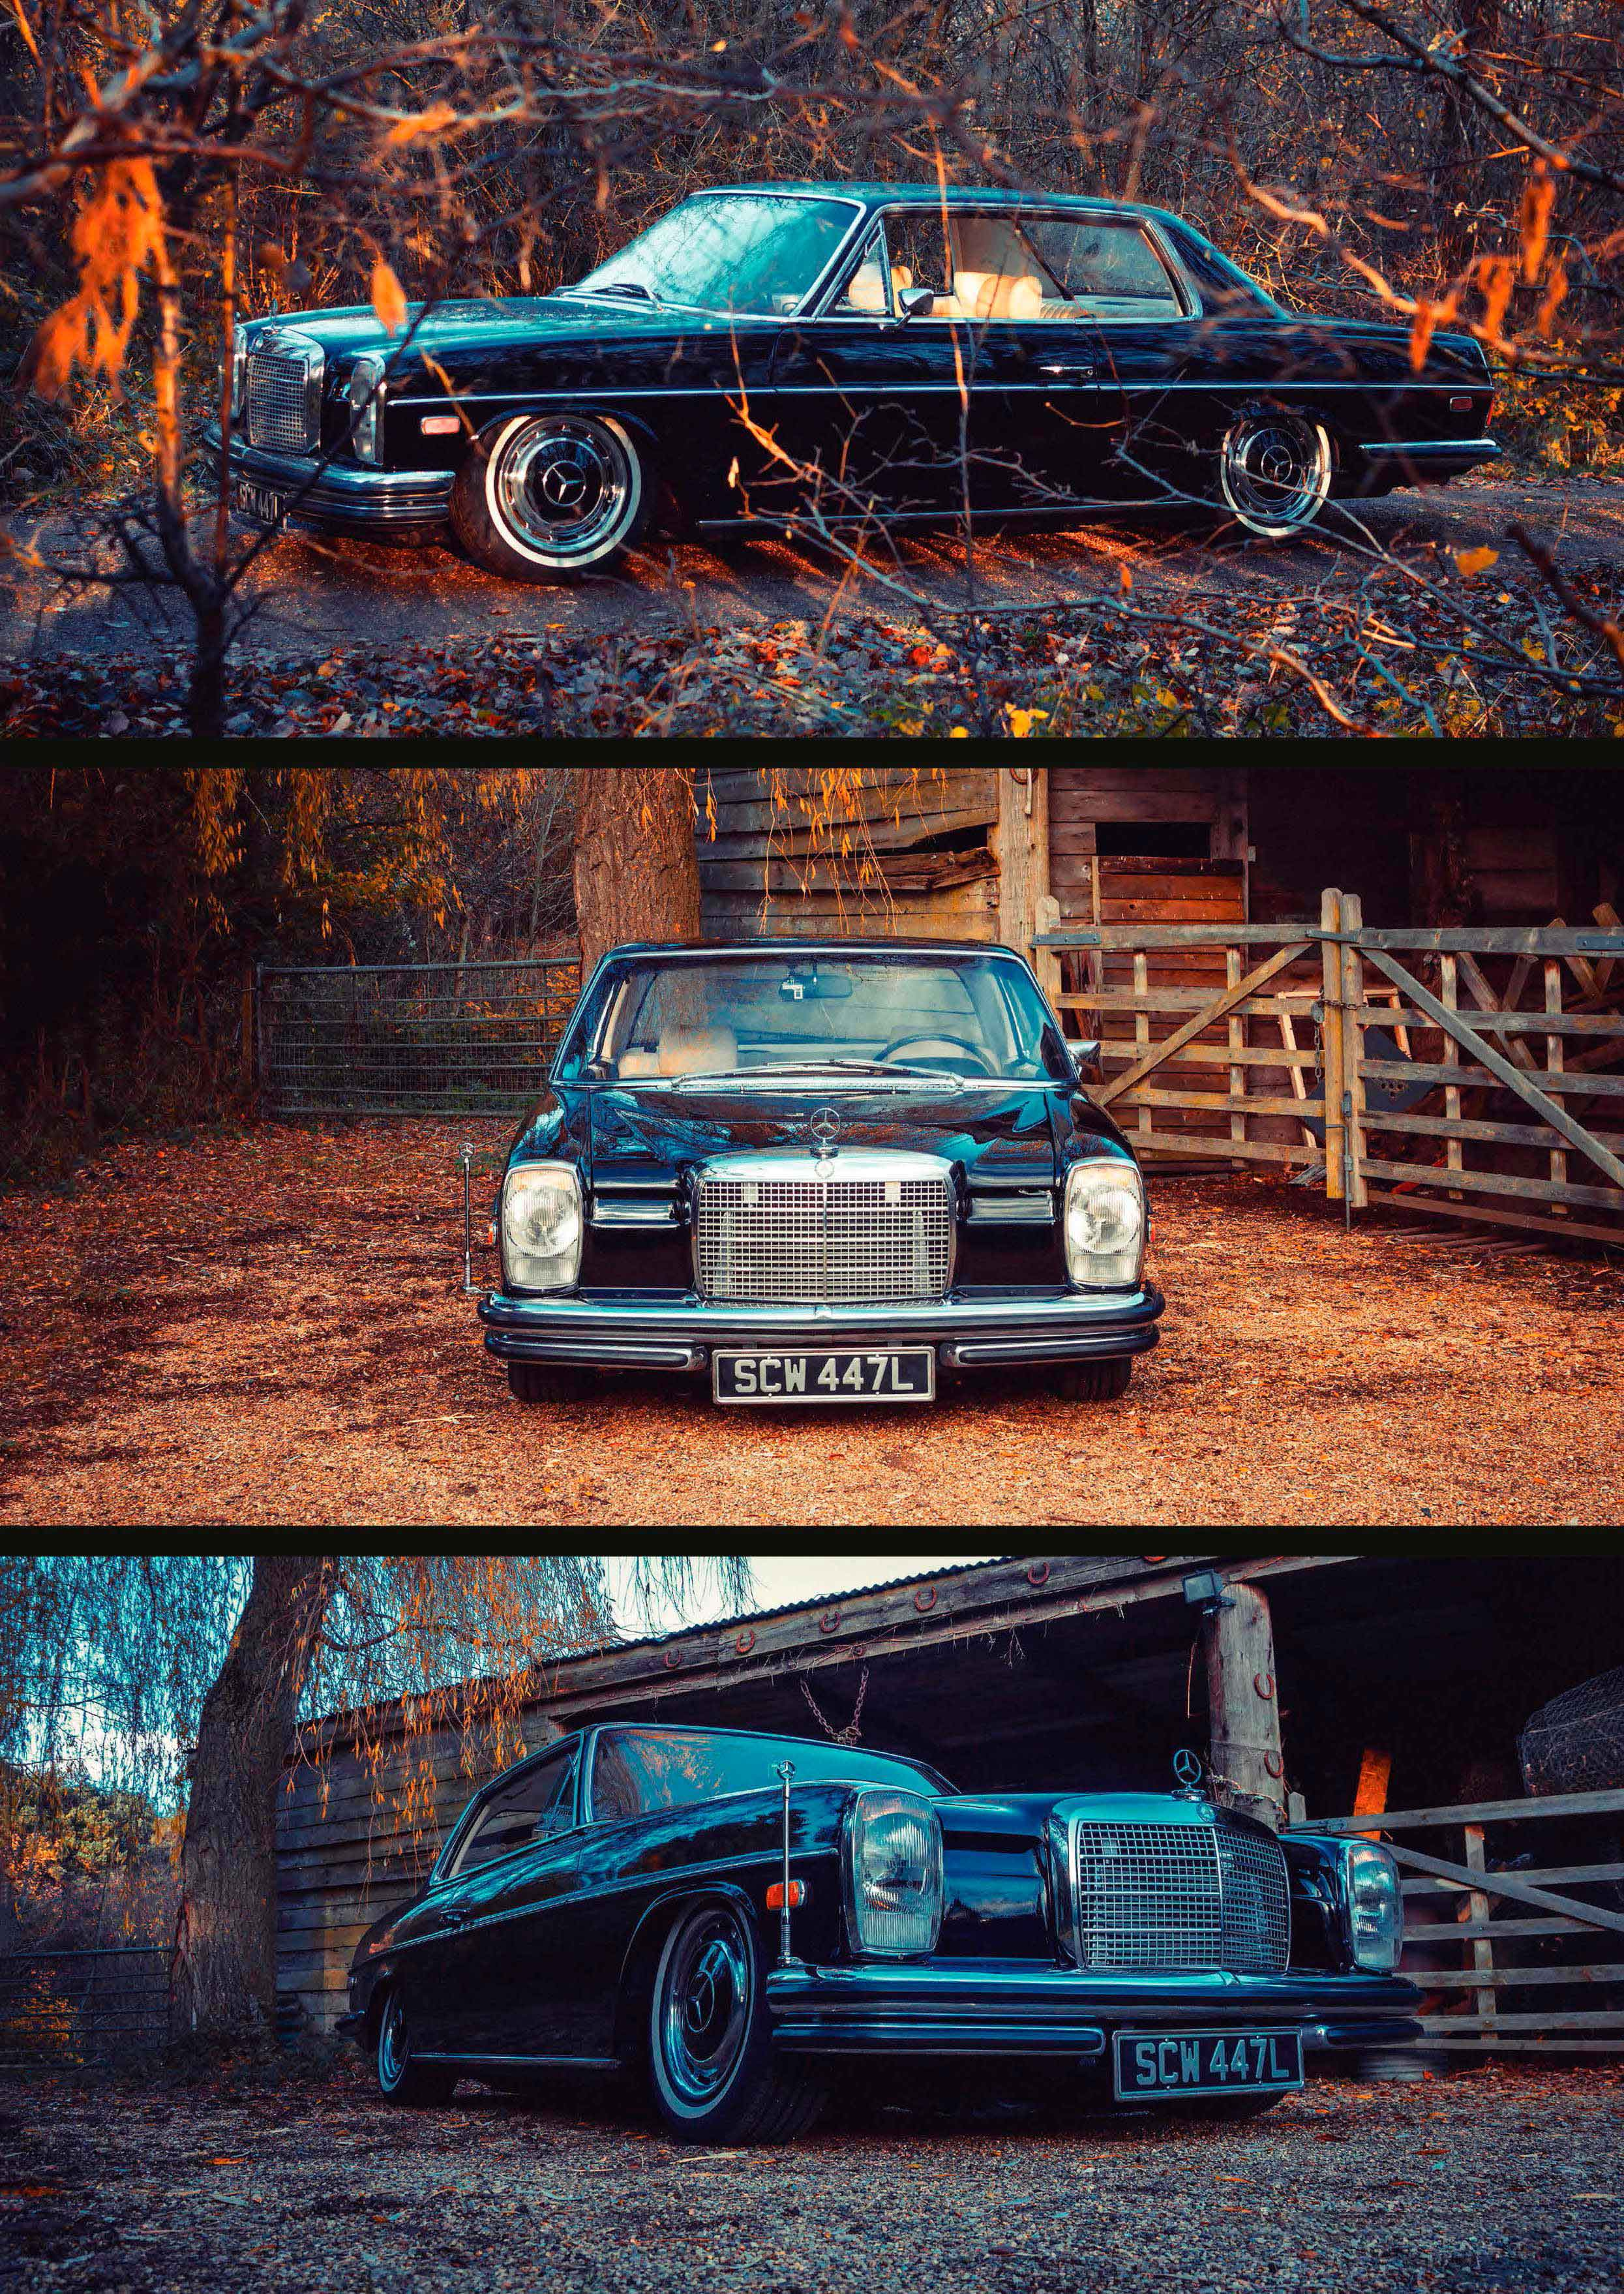 Tuned 1973 Mercedes-Benz 280CE W114/C114 Turbo Diesel OM606 engined